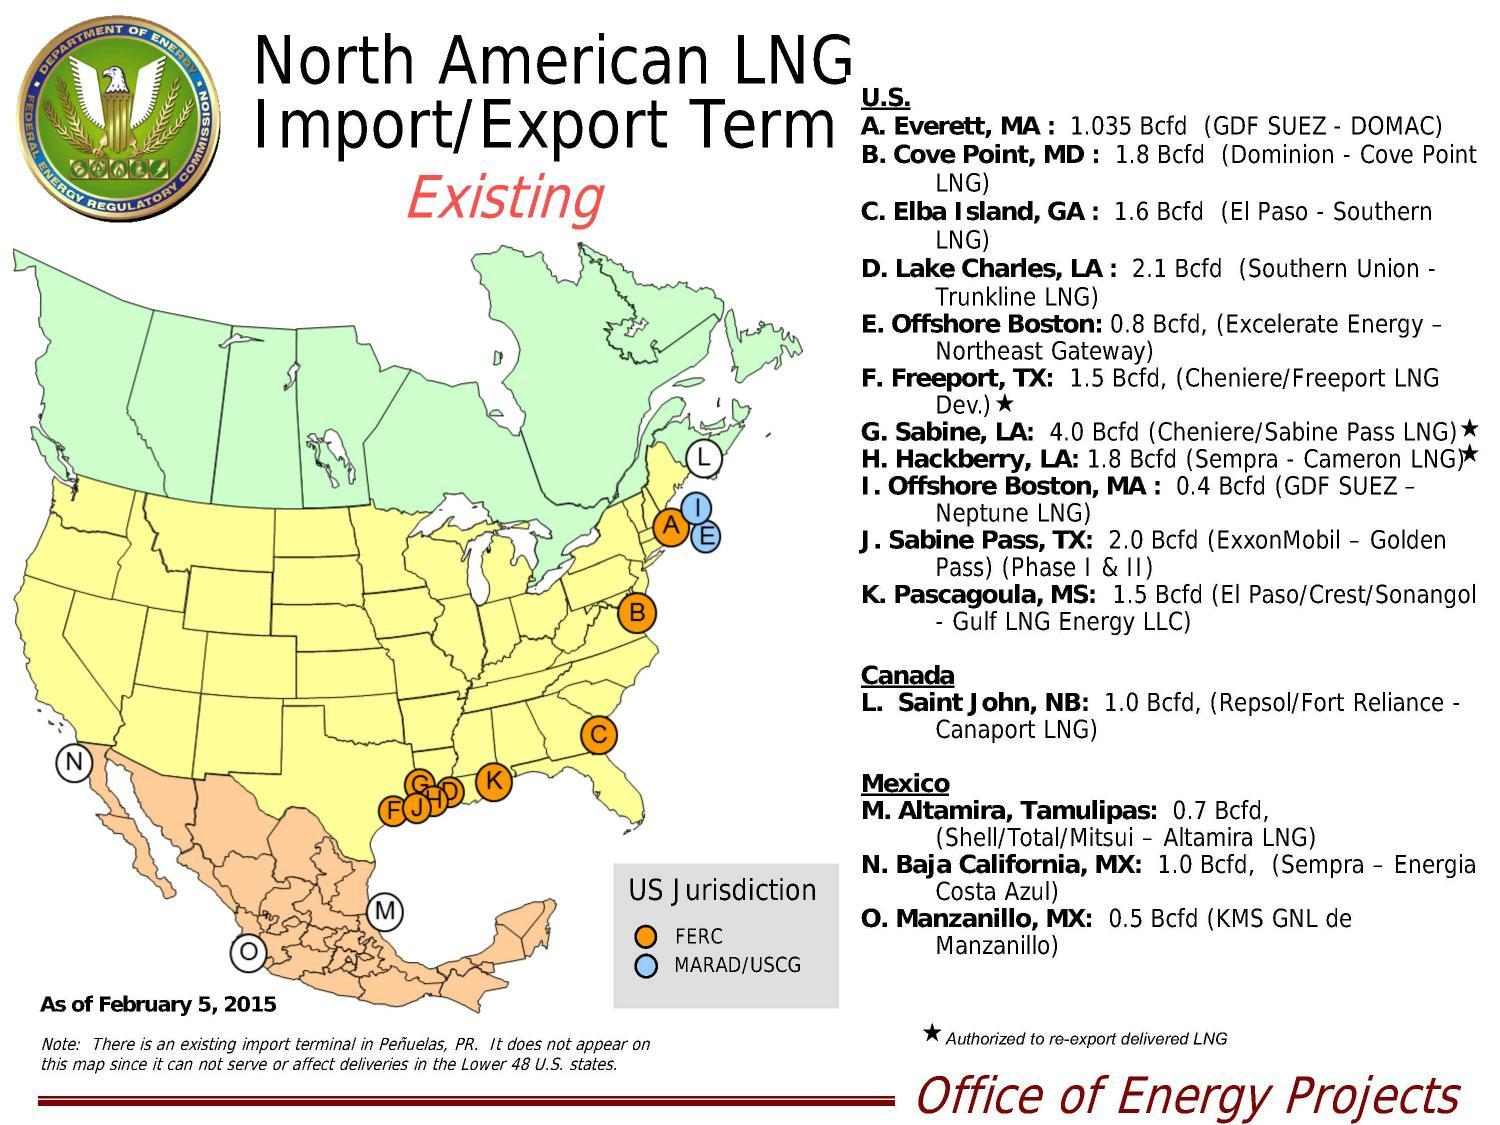 1500x1125 FERC Existing LNG Export and Import, in LNG, by John S. Quarterman, for SpectraBusters.org, 22 February 2015